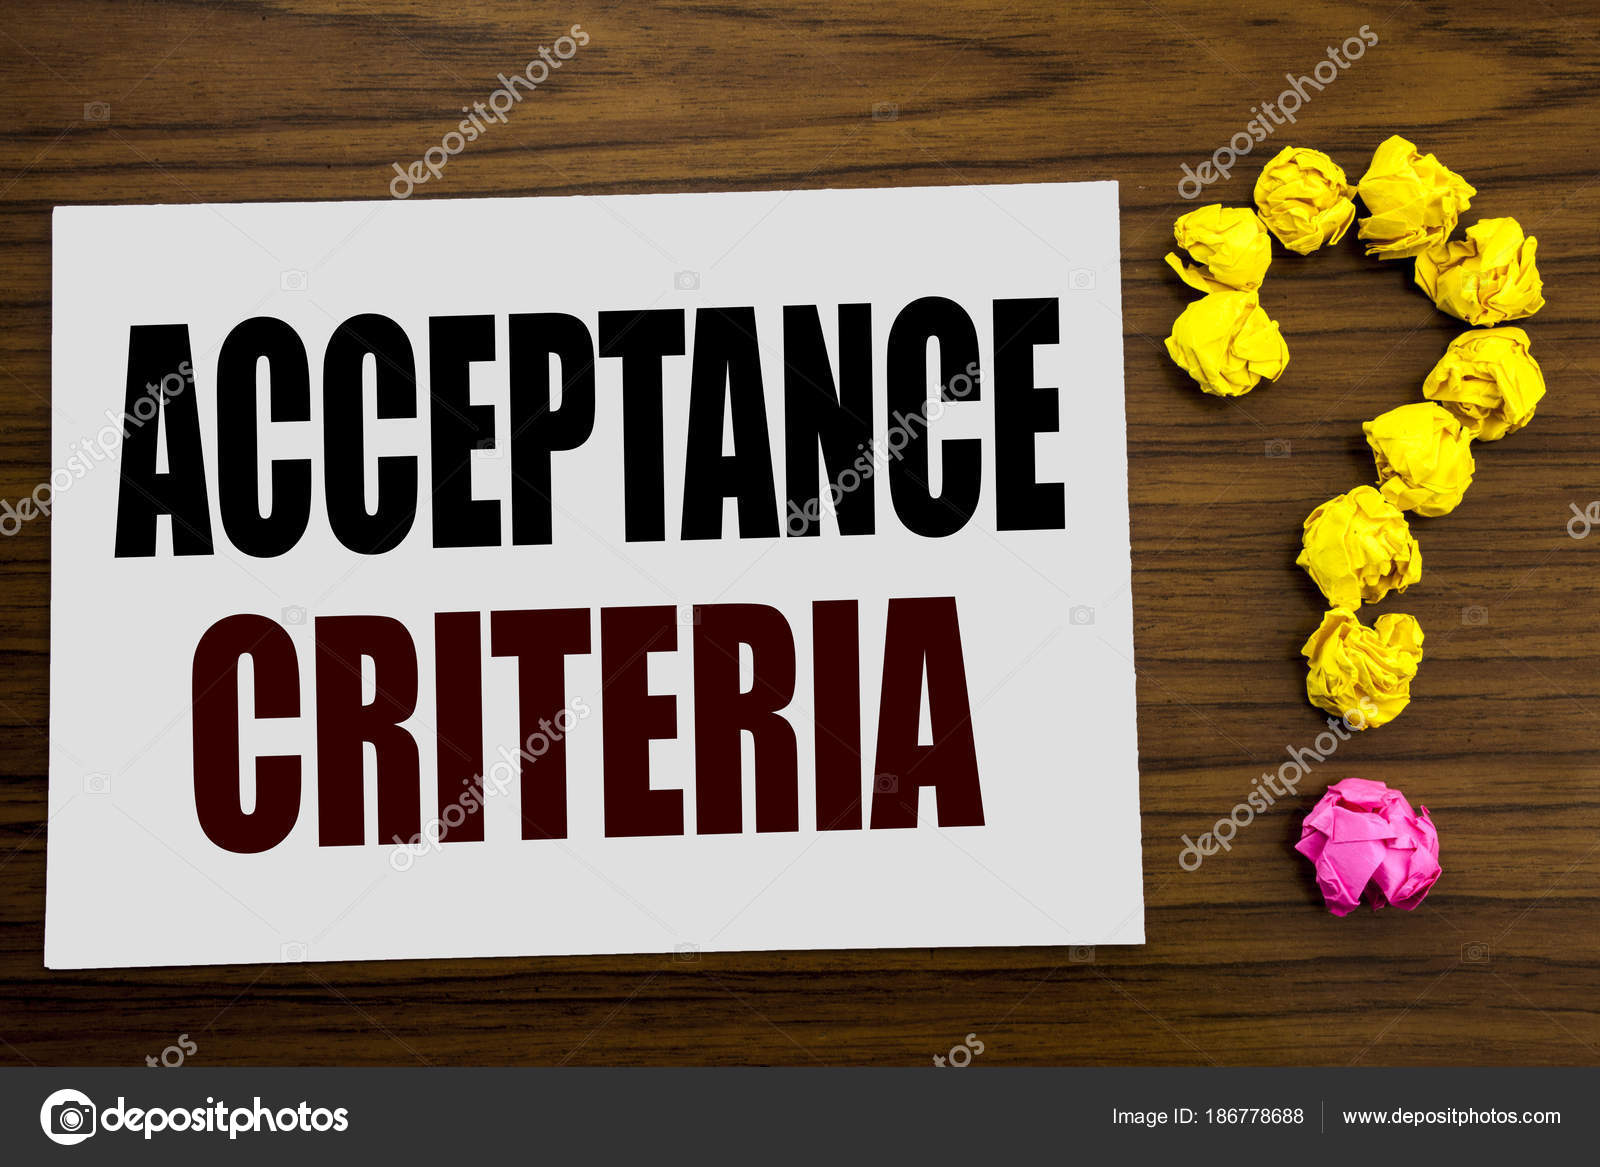 Hand writing text caption inspiration showing Acceptance